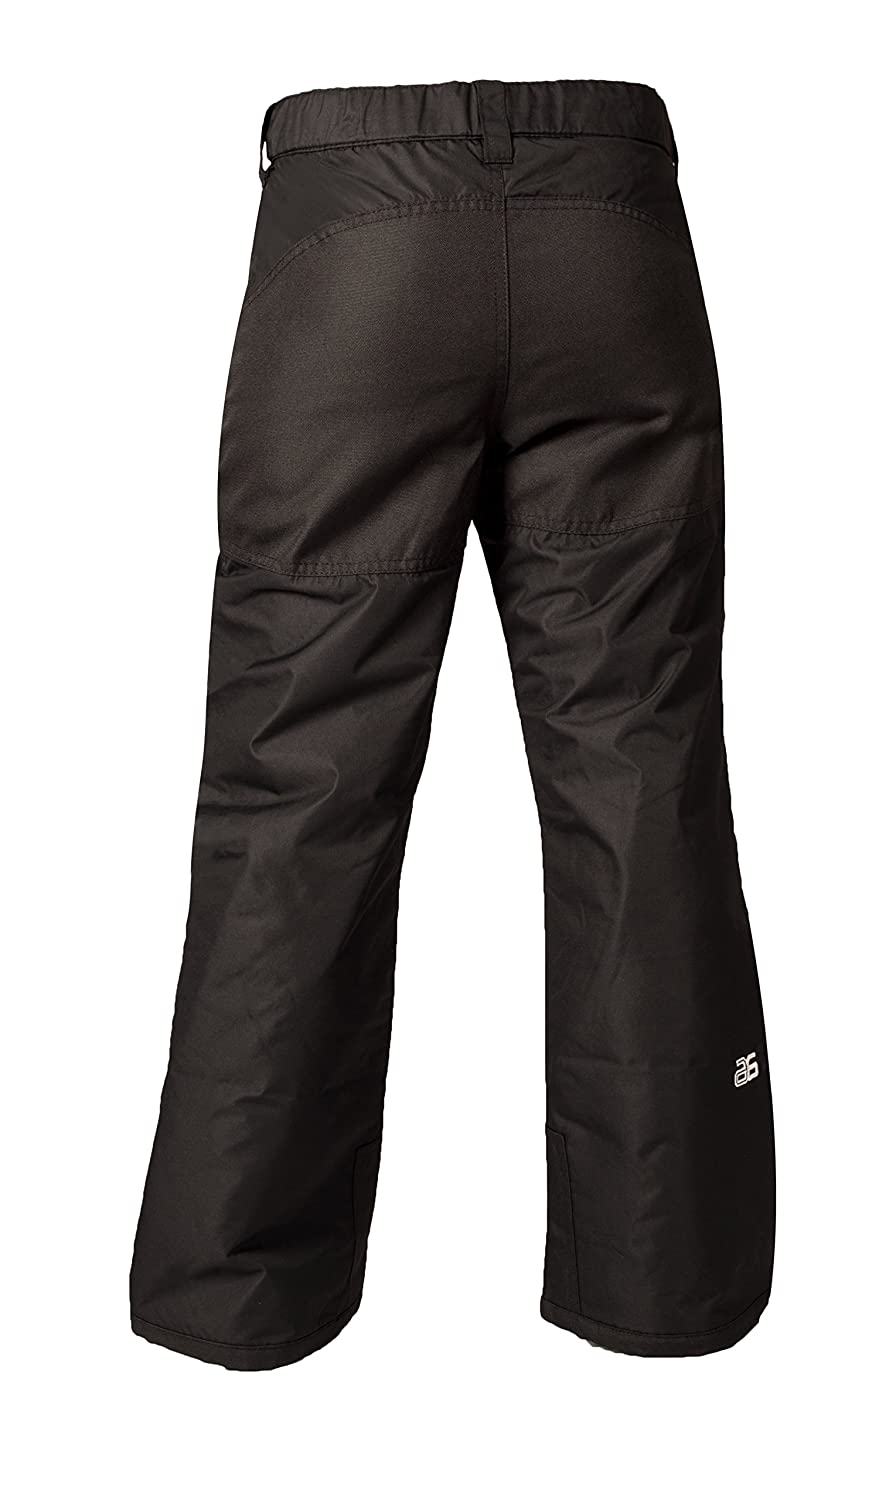 Arctix Youth Snow Pants with Reinforced Knees and Seat